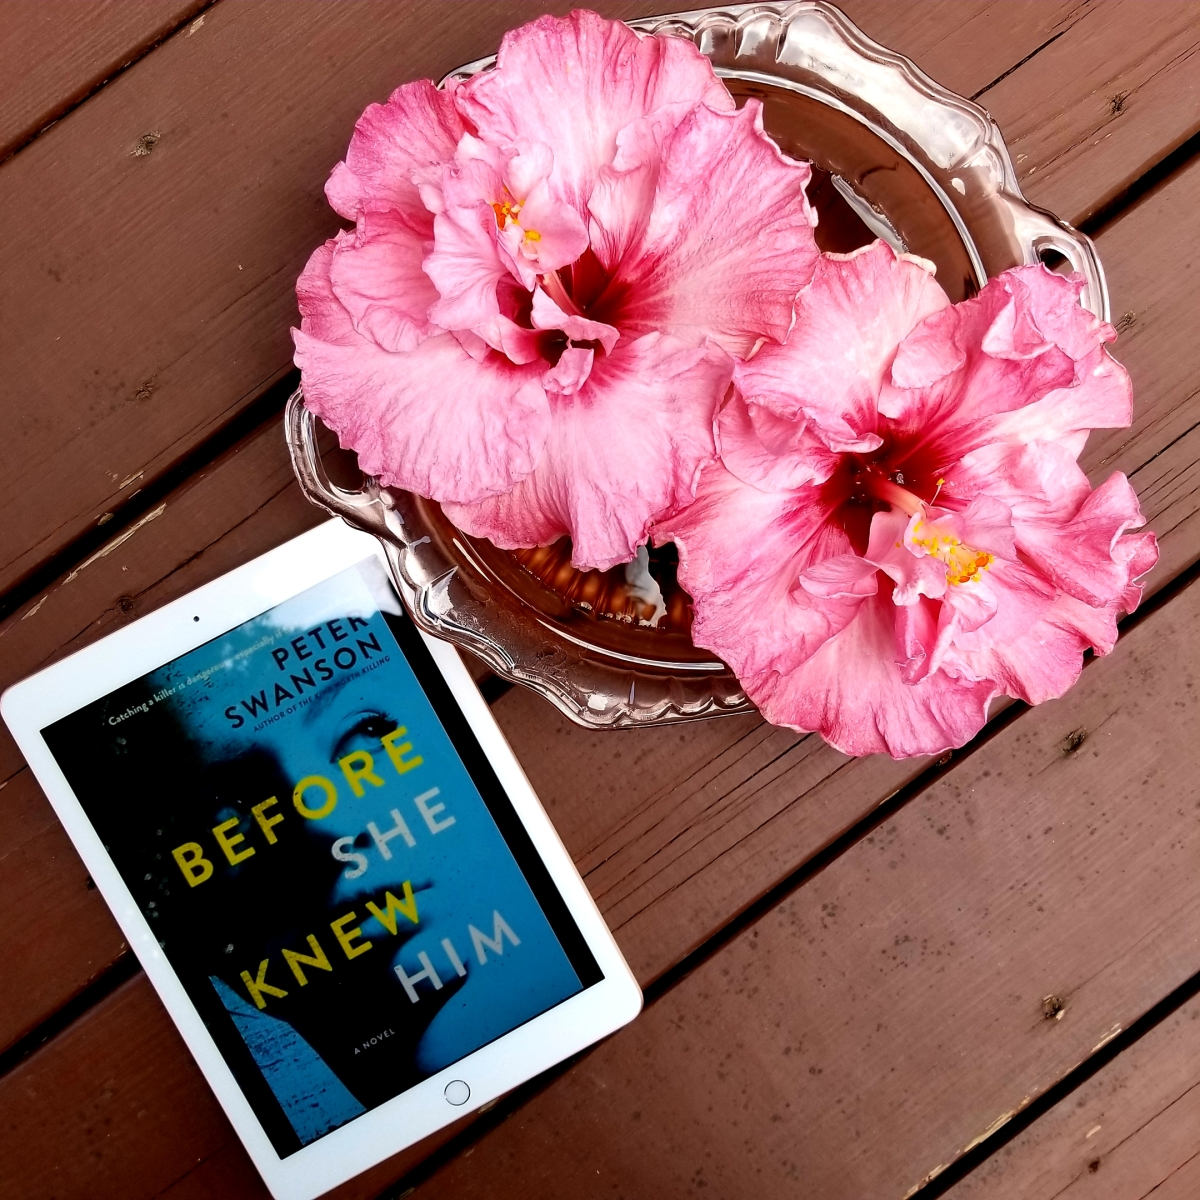 Before She Knew Him by Peter Swanson #bookreview #tarheelreader #thrbeforesheknew @peterswanson3 @wmmorrowbooks #beforesheknewhim